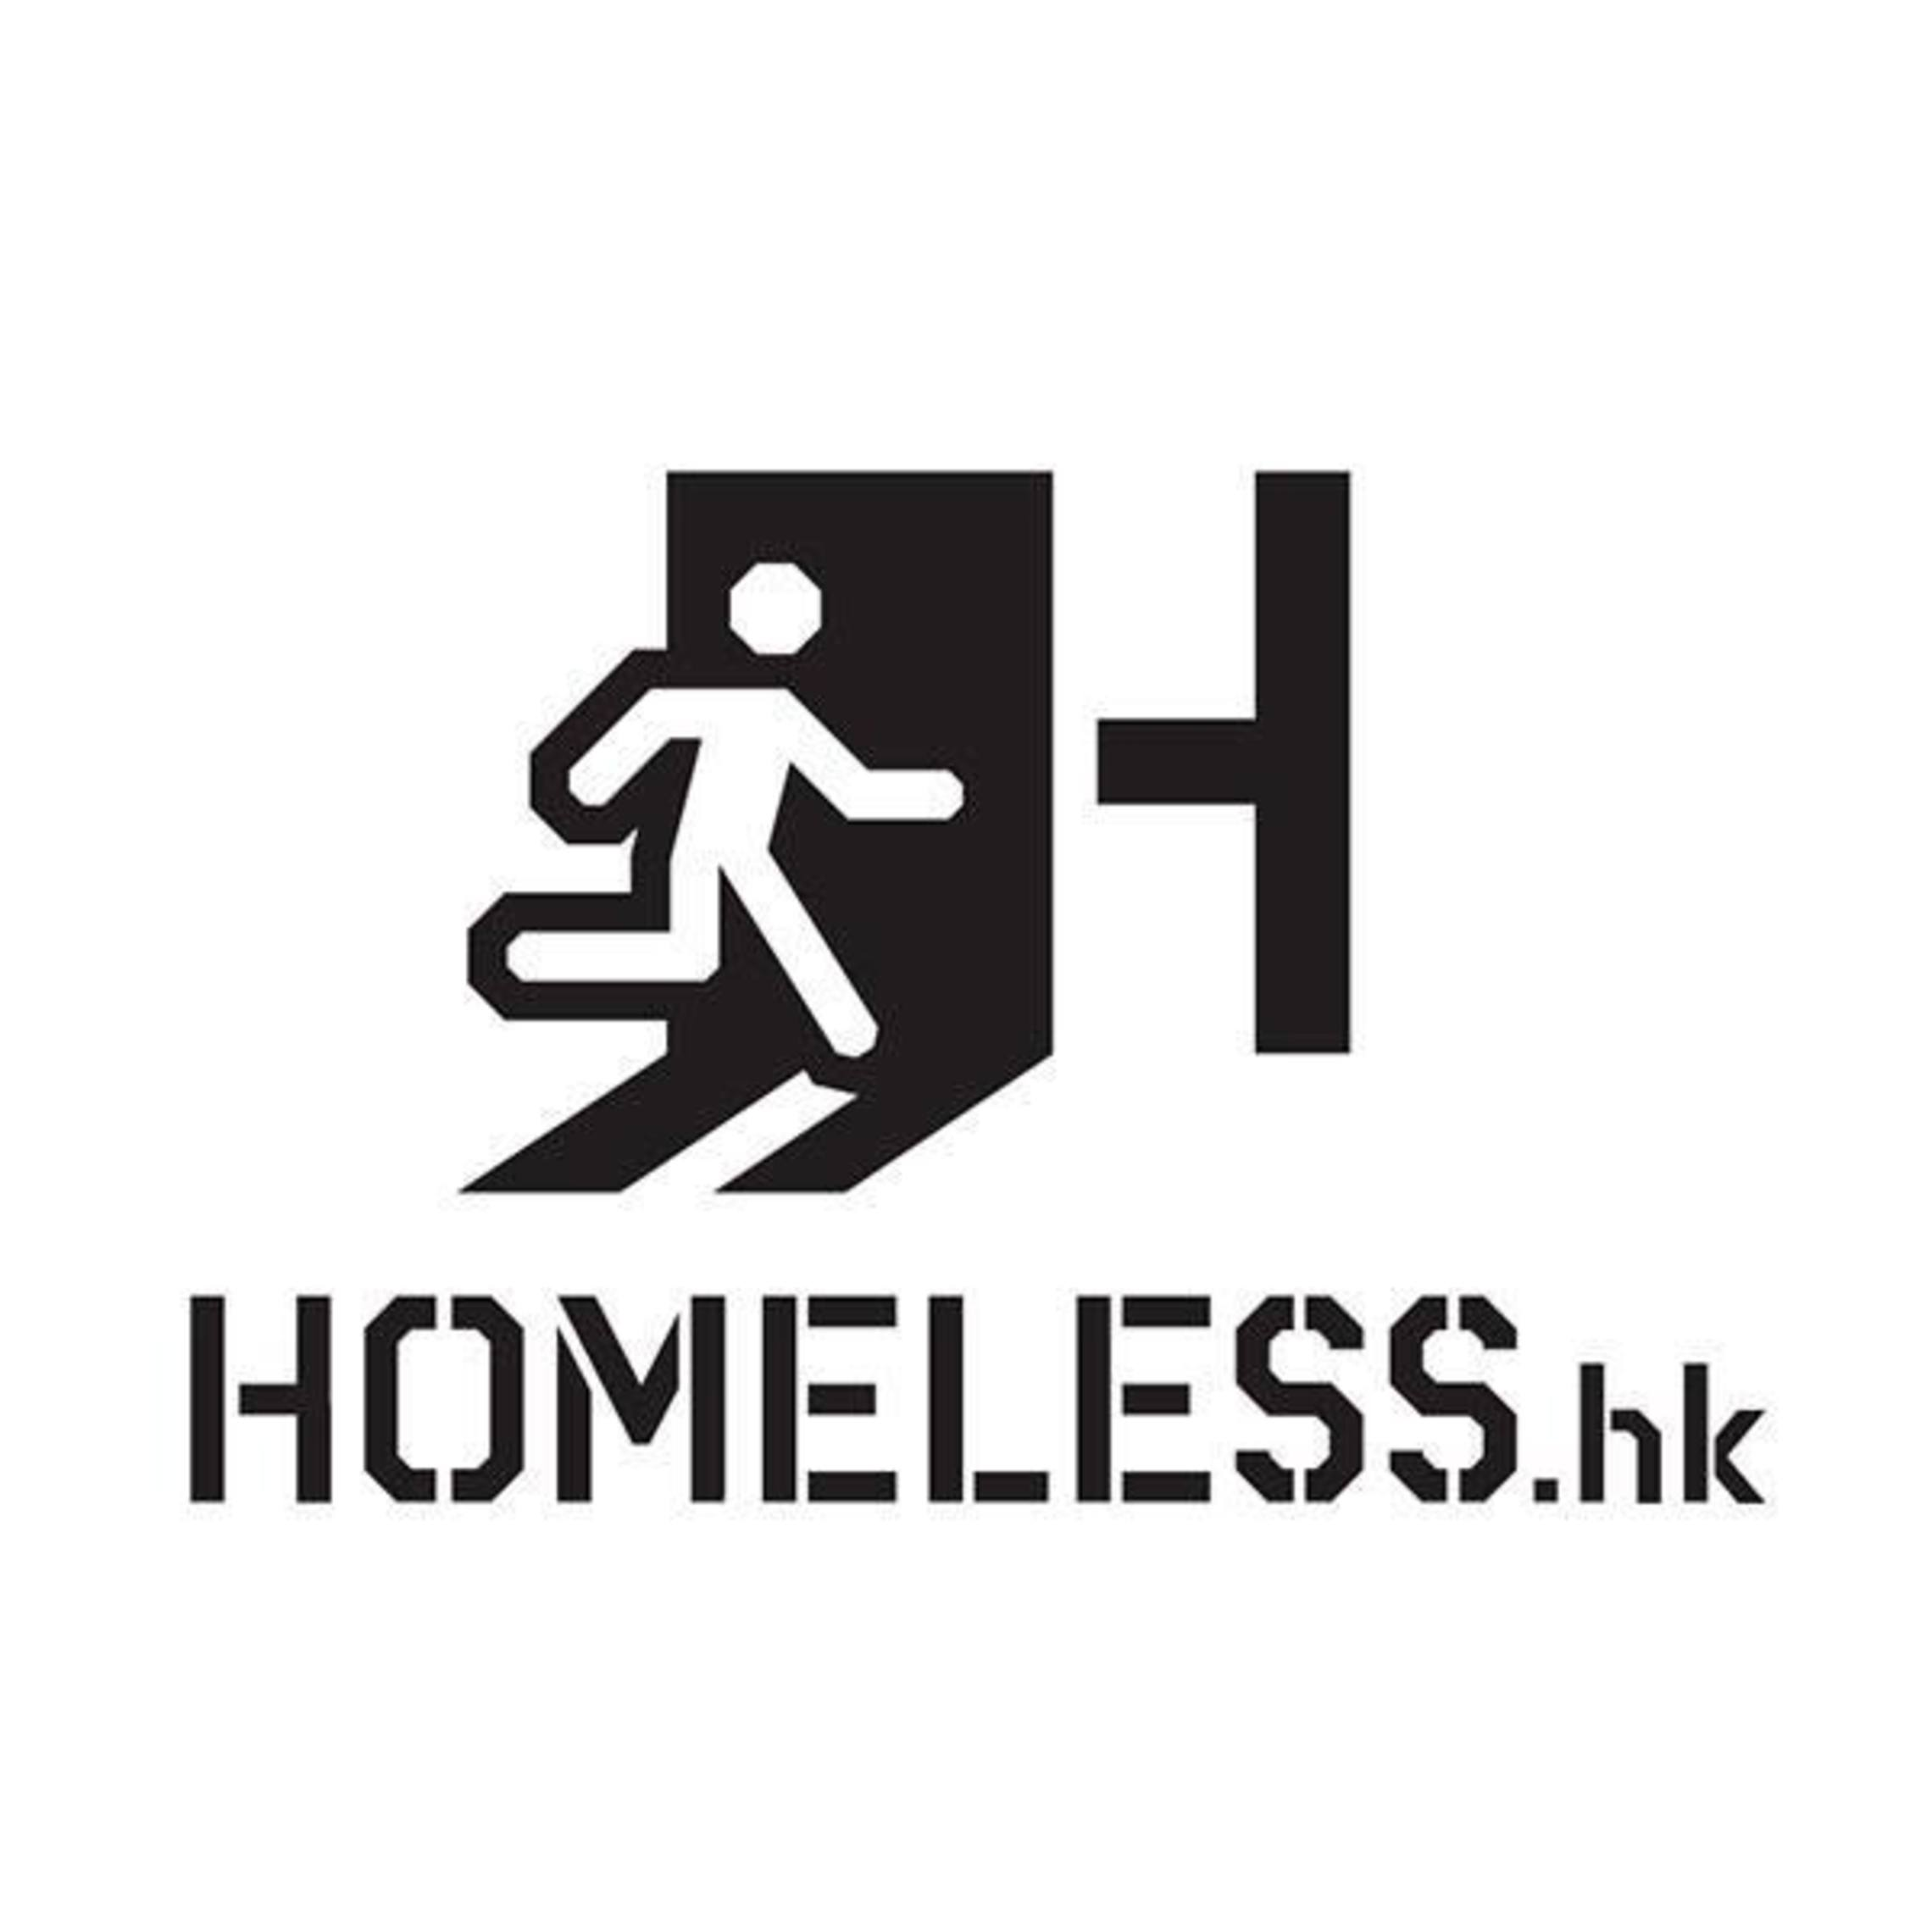 homeless hk- company logo